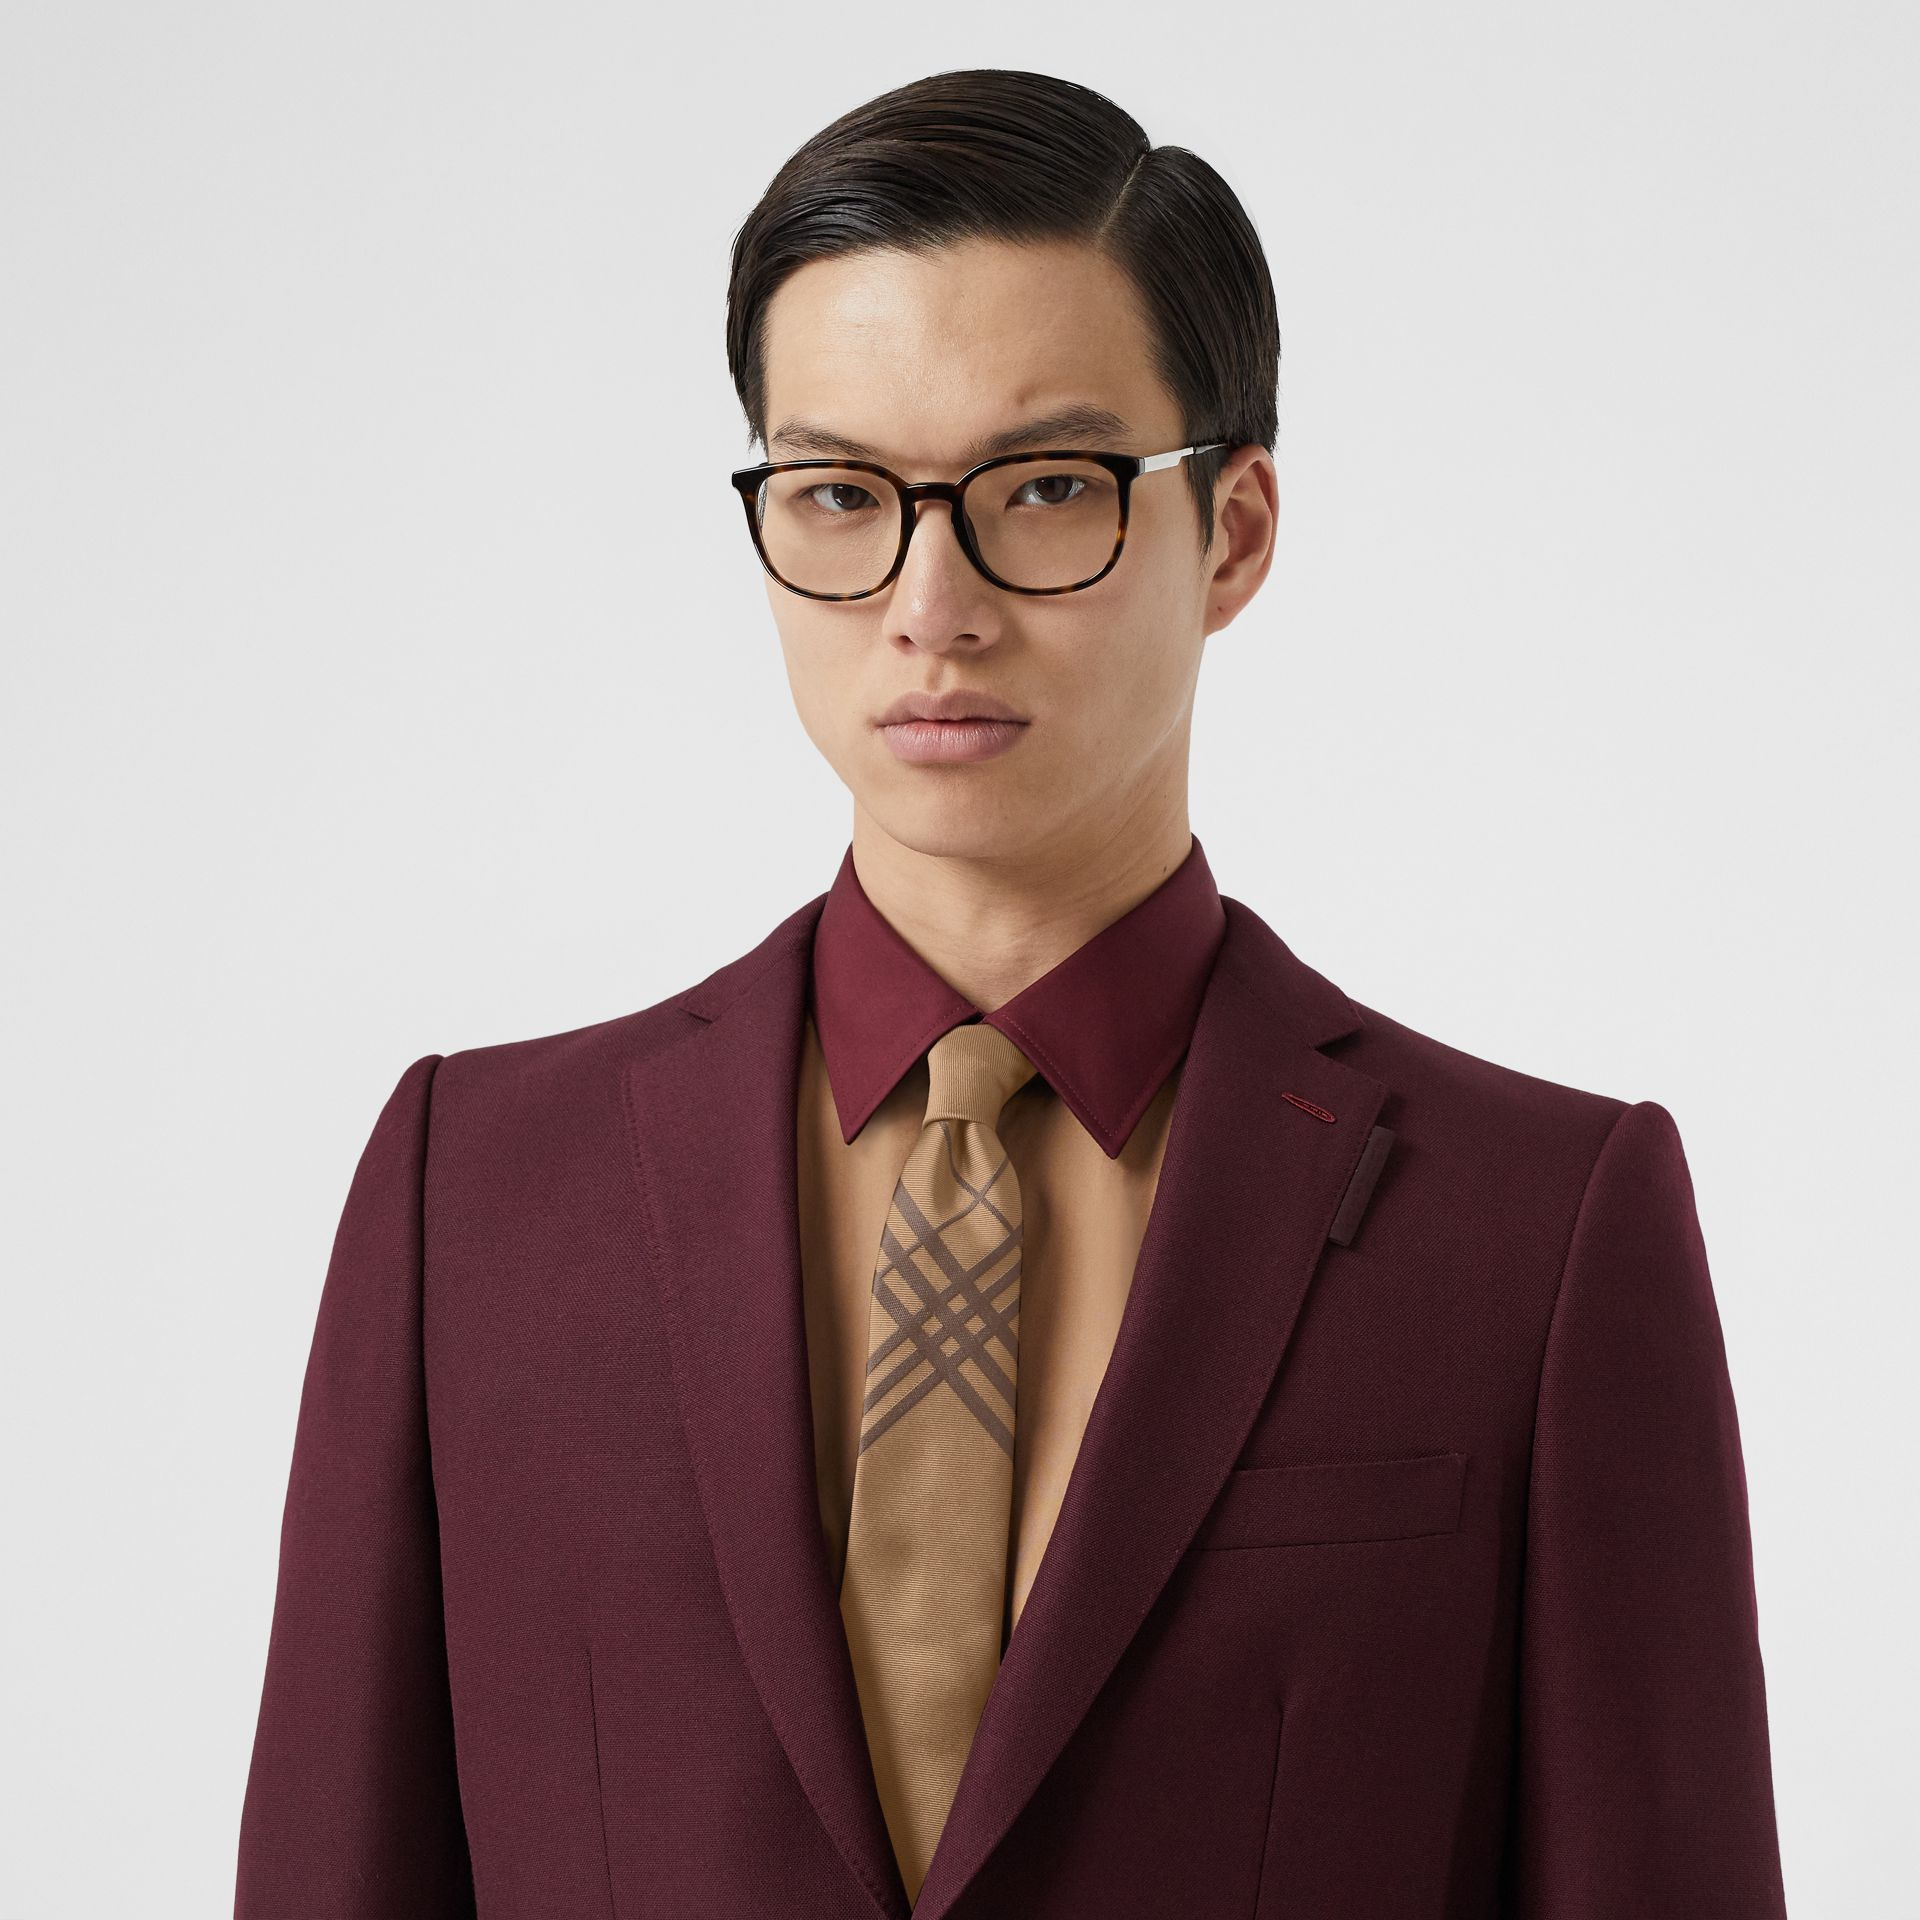 Cravate classique en jacquard de soie check (Caramel) - Homme | Burberry Canada - photo de la galerie 2